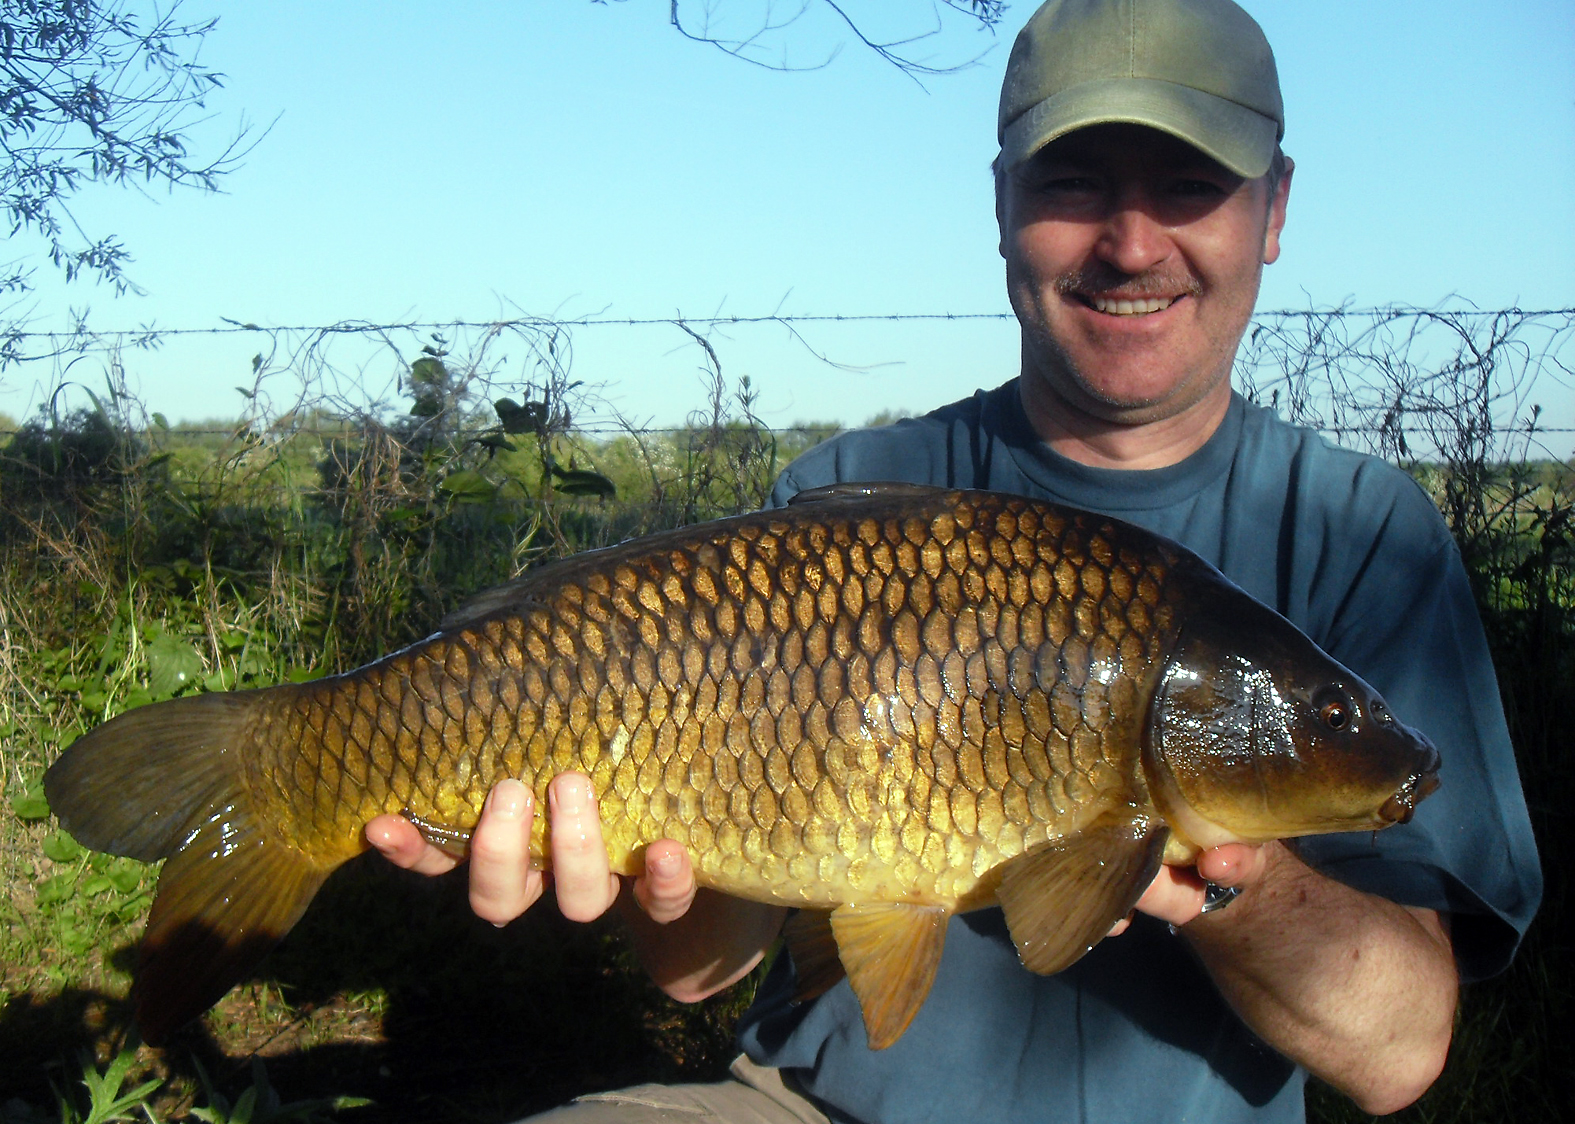 No2 landed, and this time its a small common